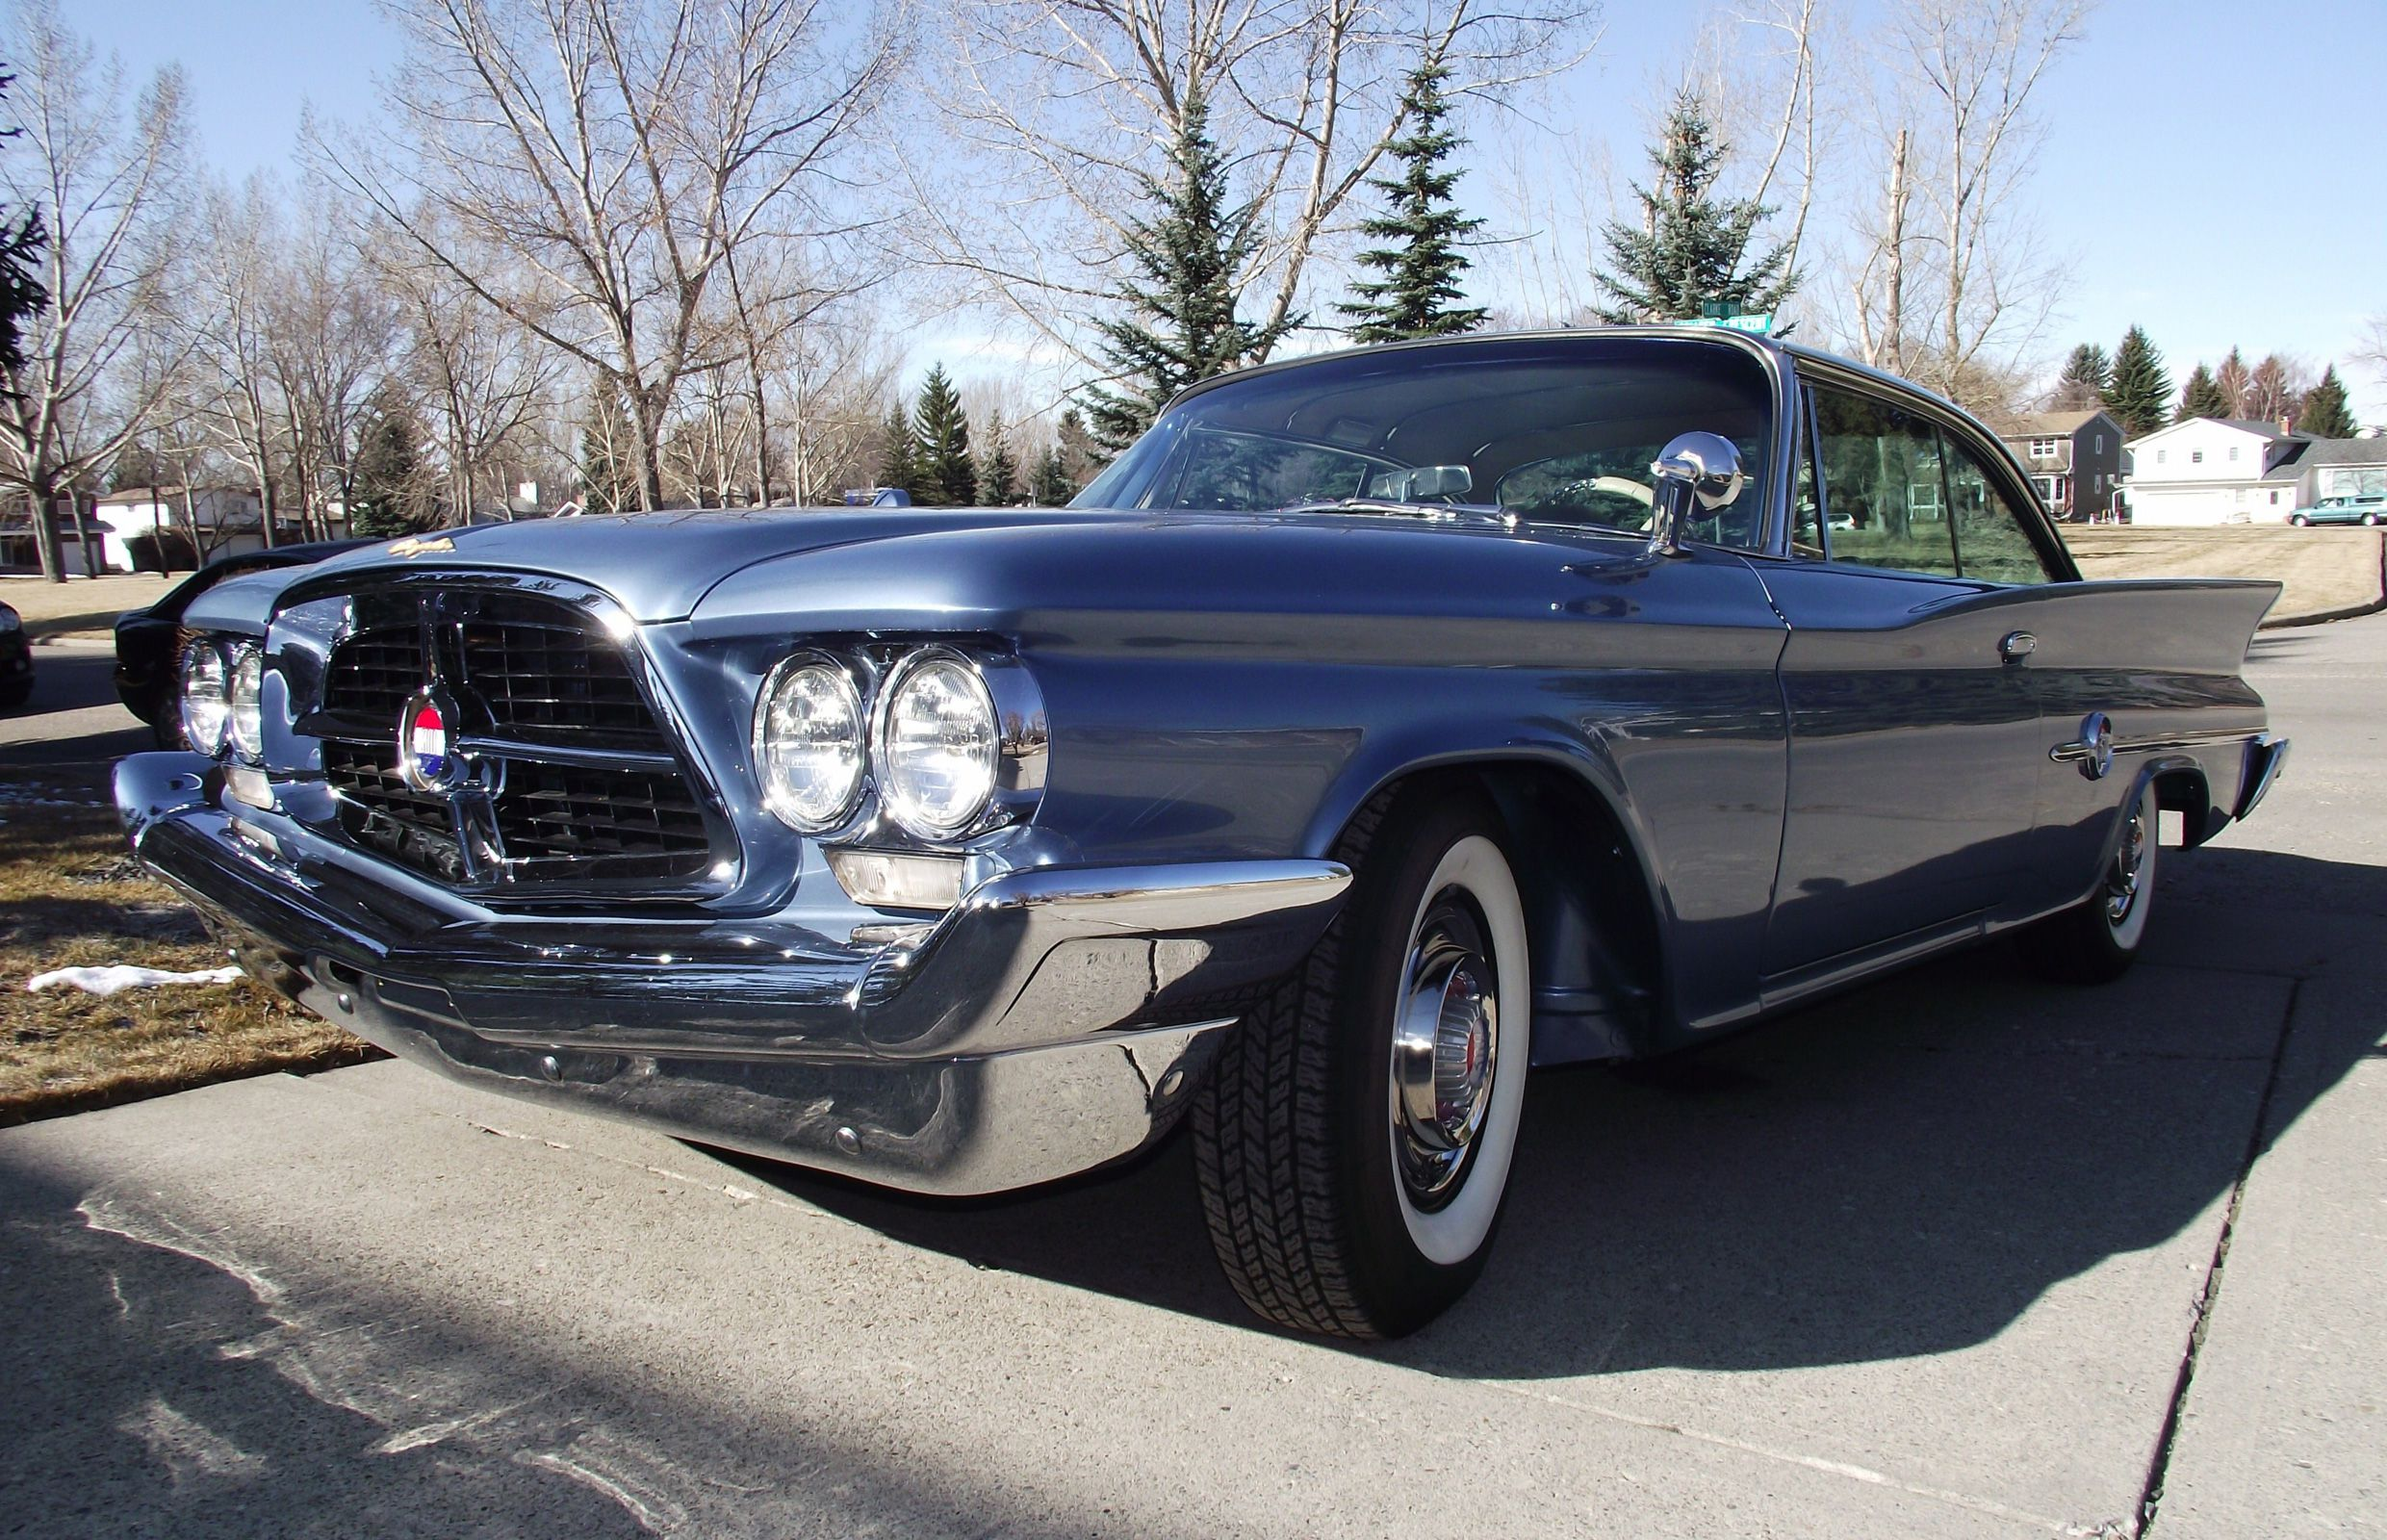 Mark Hopkins' 1960 Chrysler 300F.